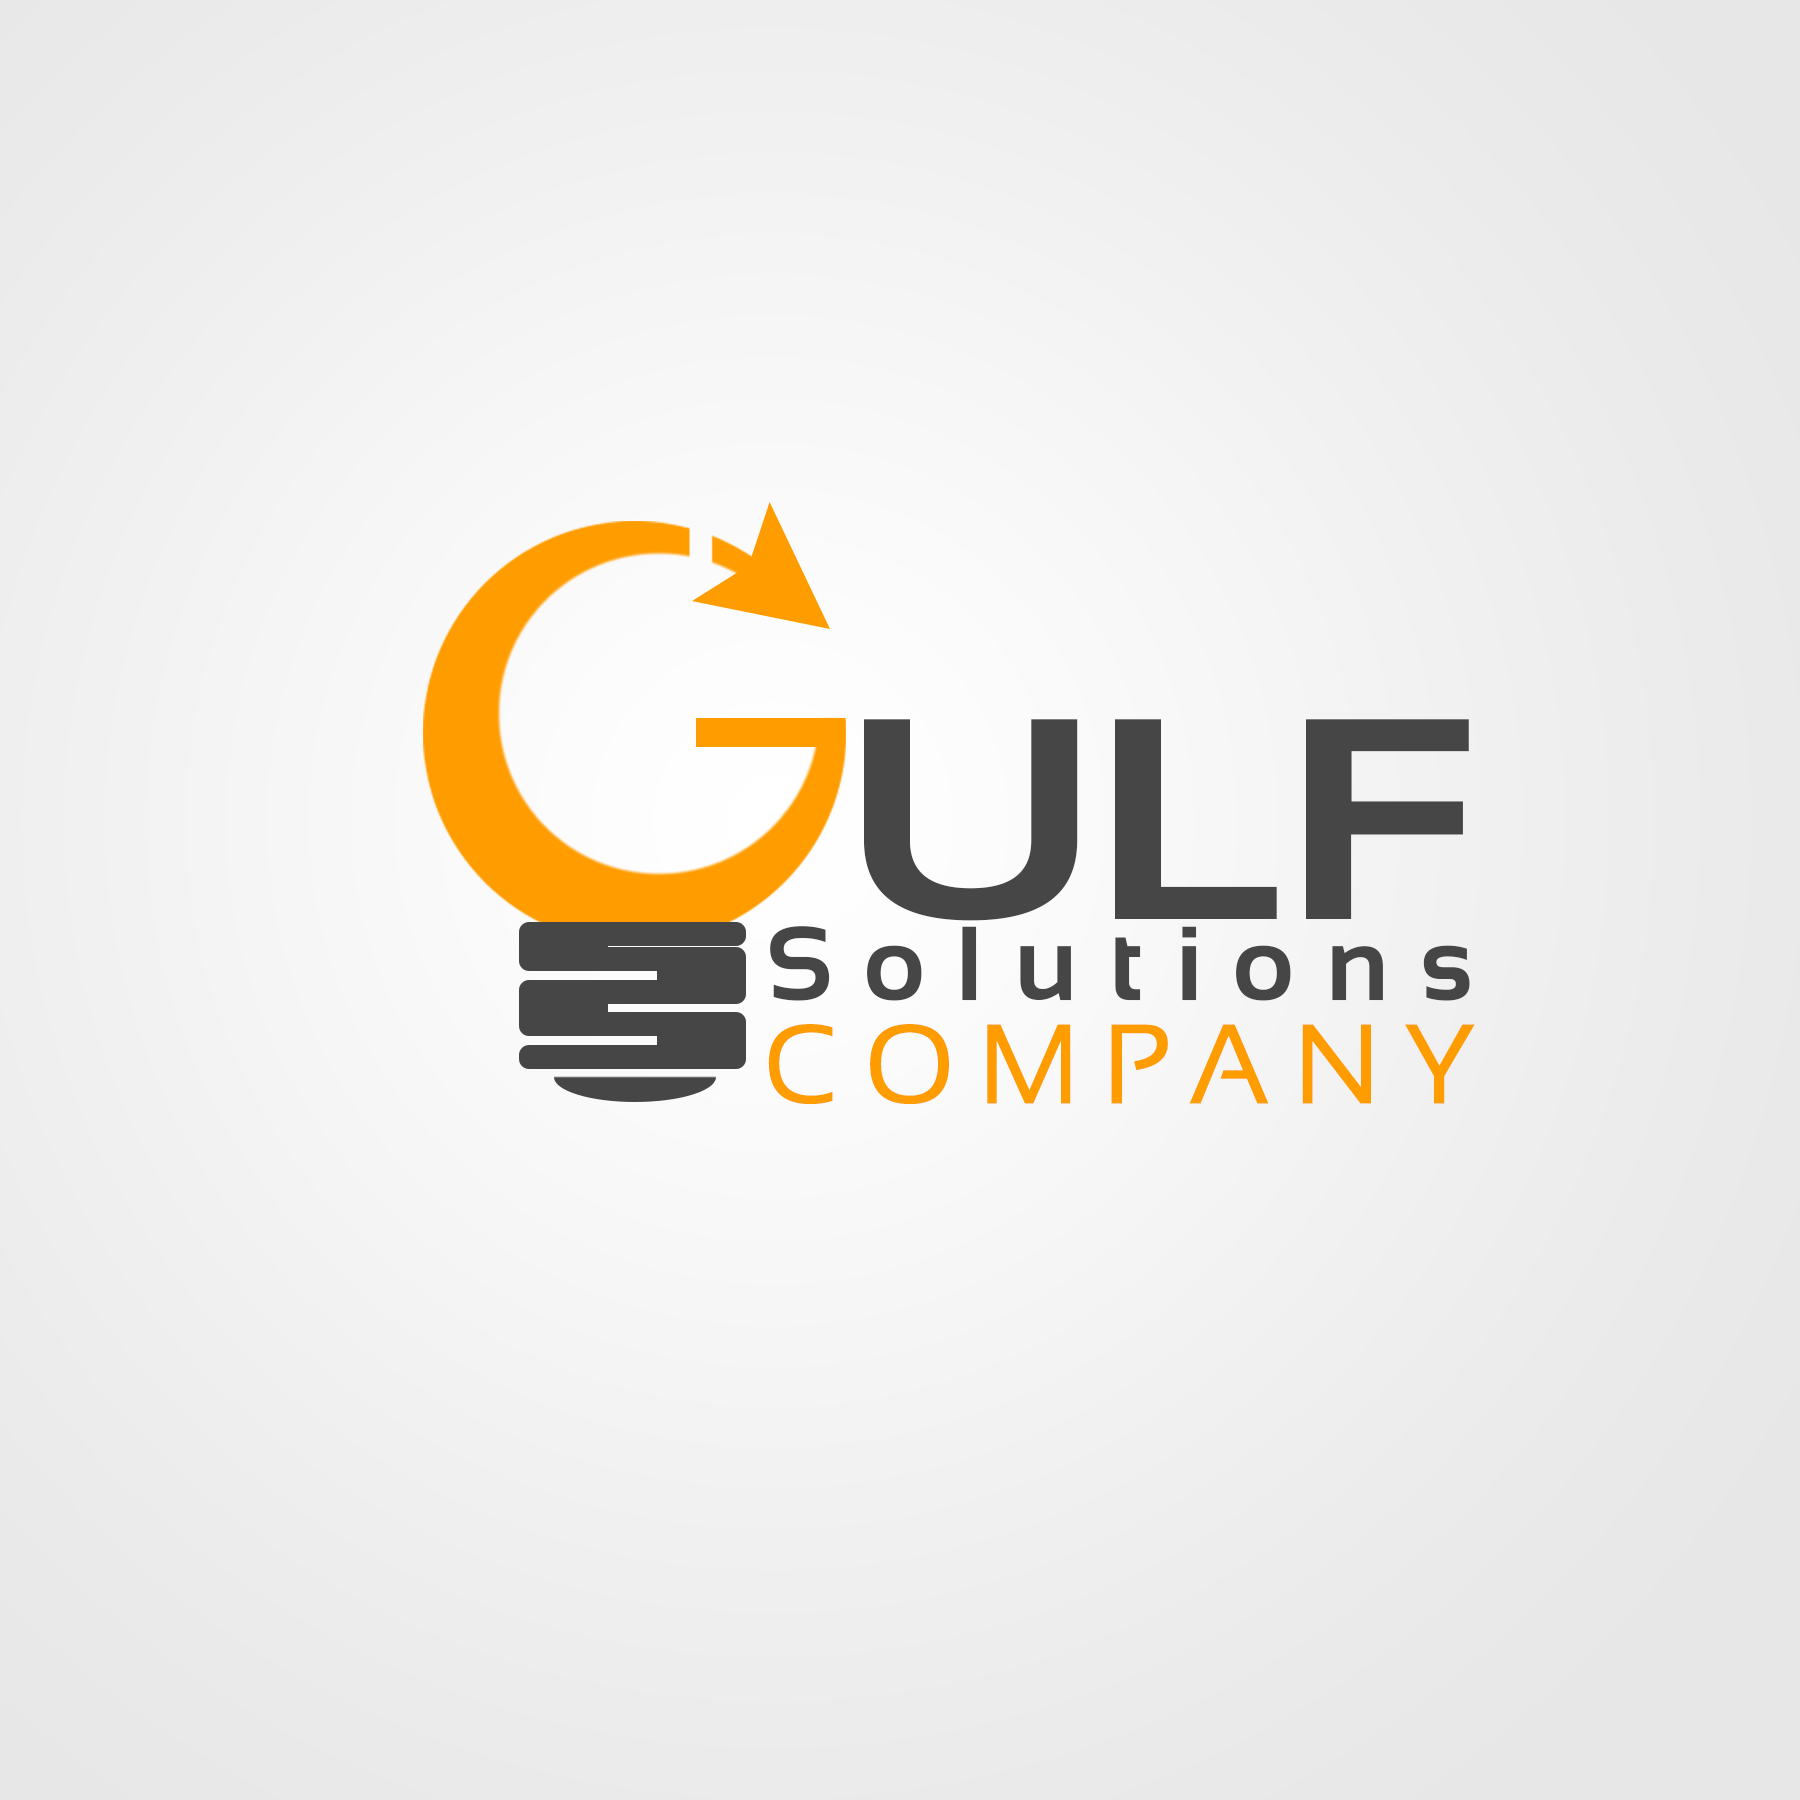 Logo Design by Lemuel Arvin Tanzo - Entry No. 108 in the Logo Design Contest New Logo Design for Gulf solutions company.